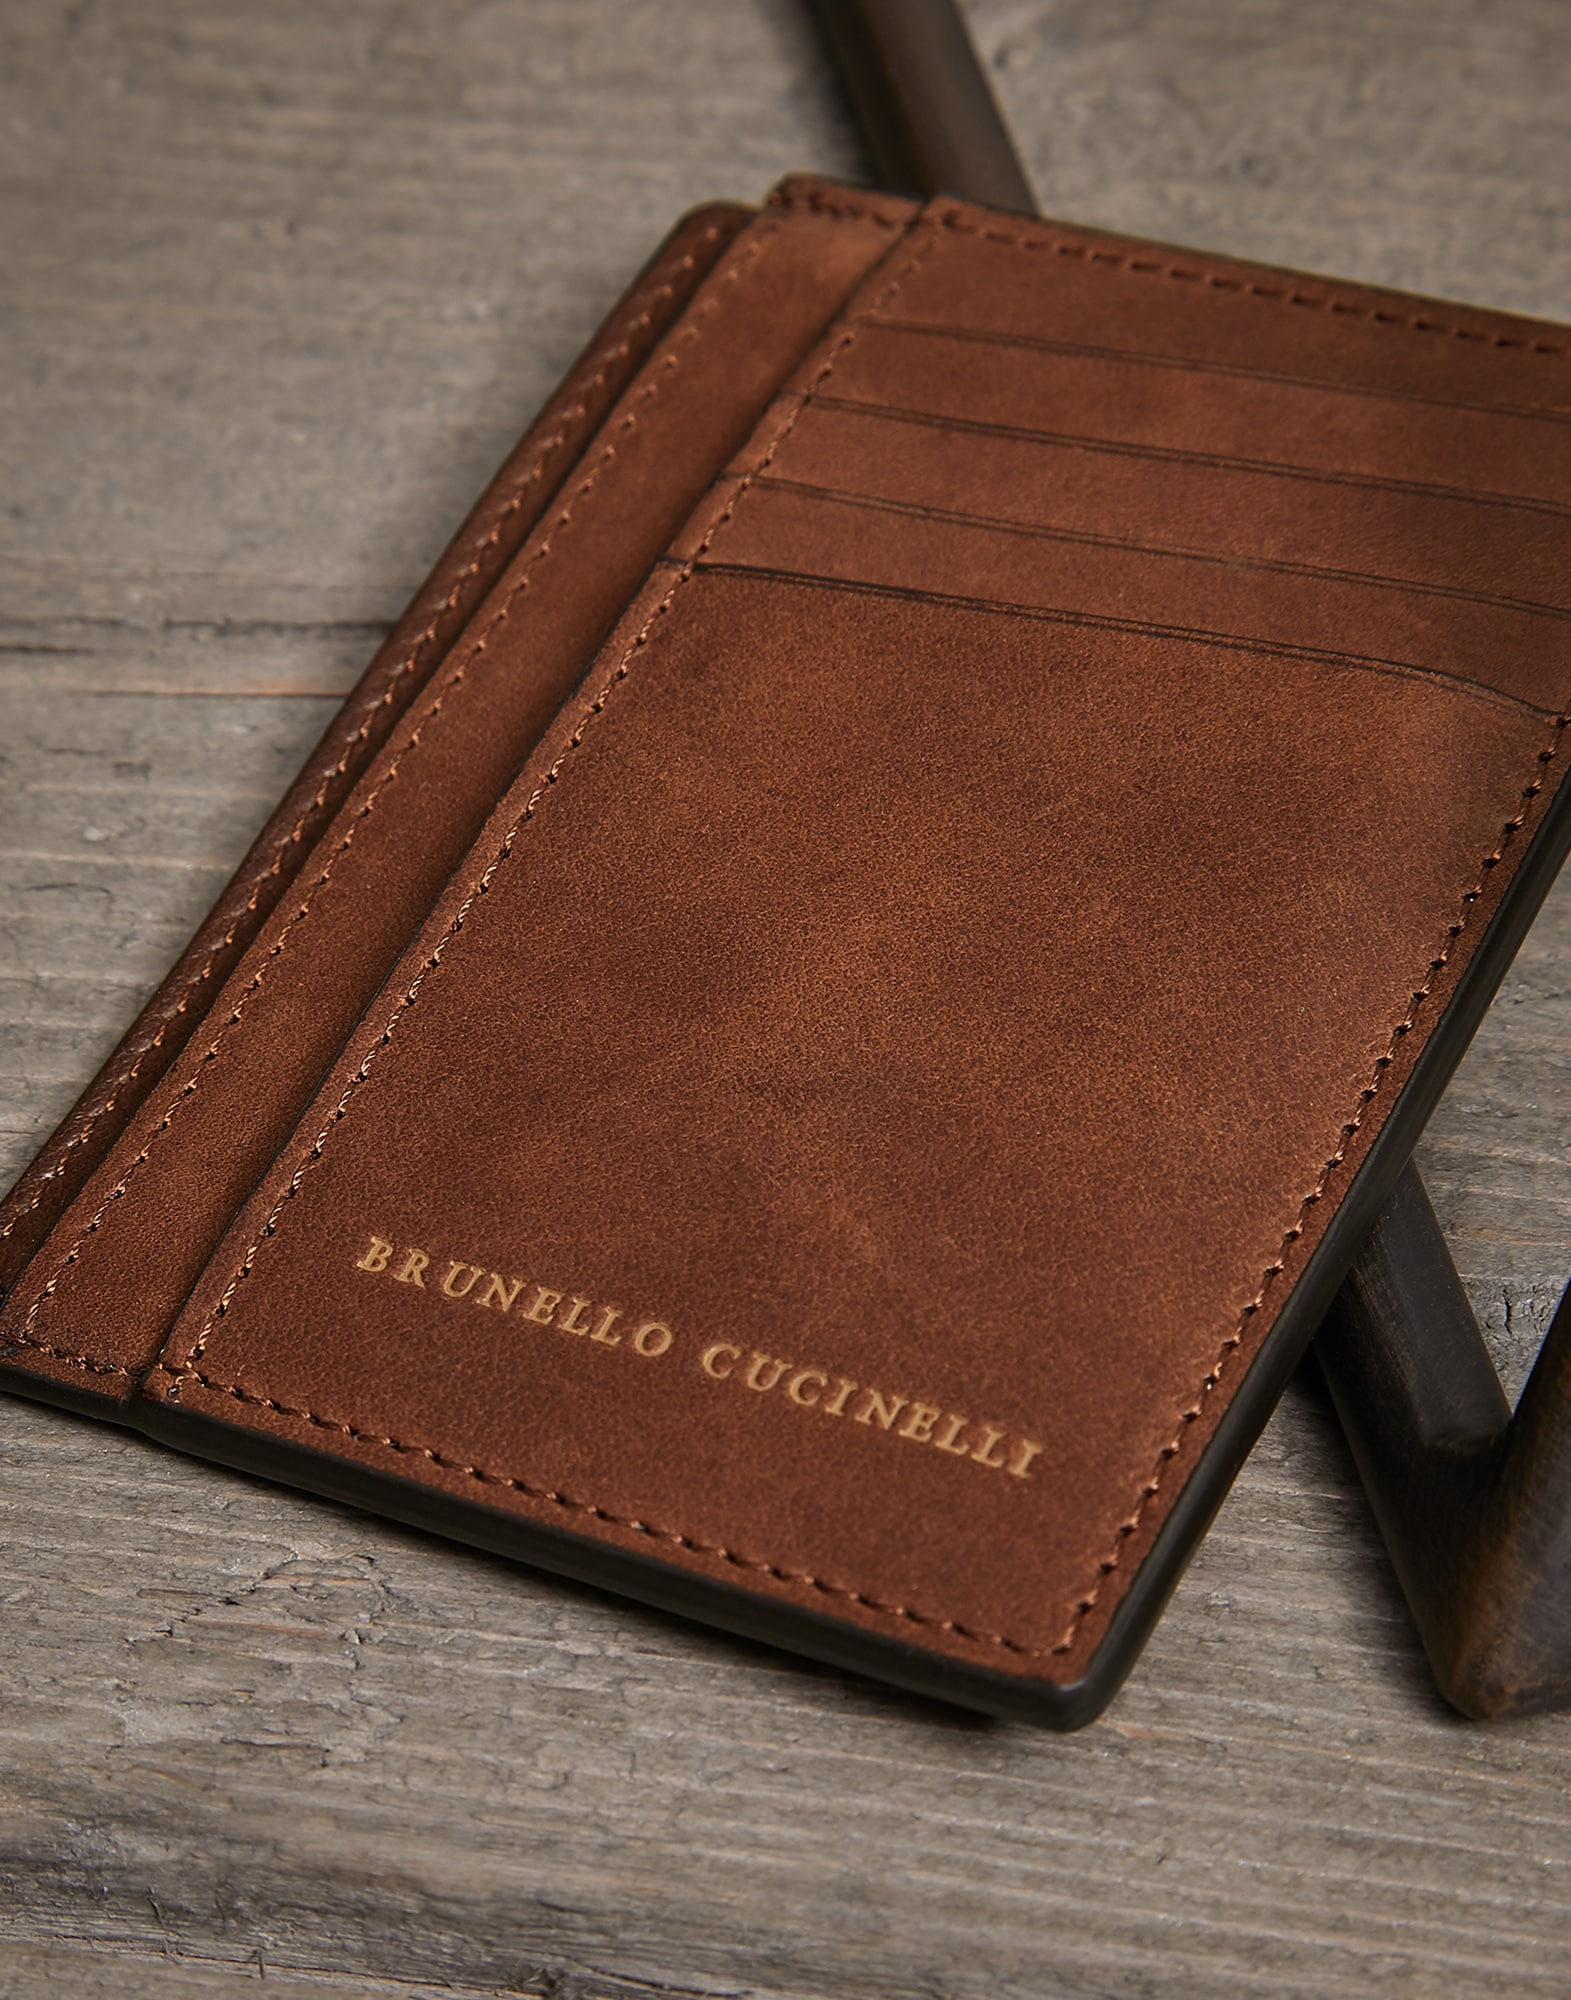 Card Holder Bark Man 2 - Brunello Cucinelli